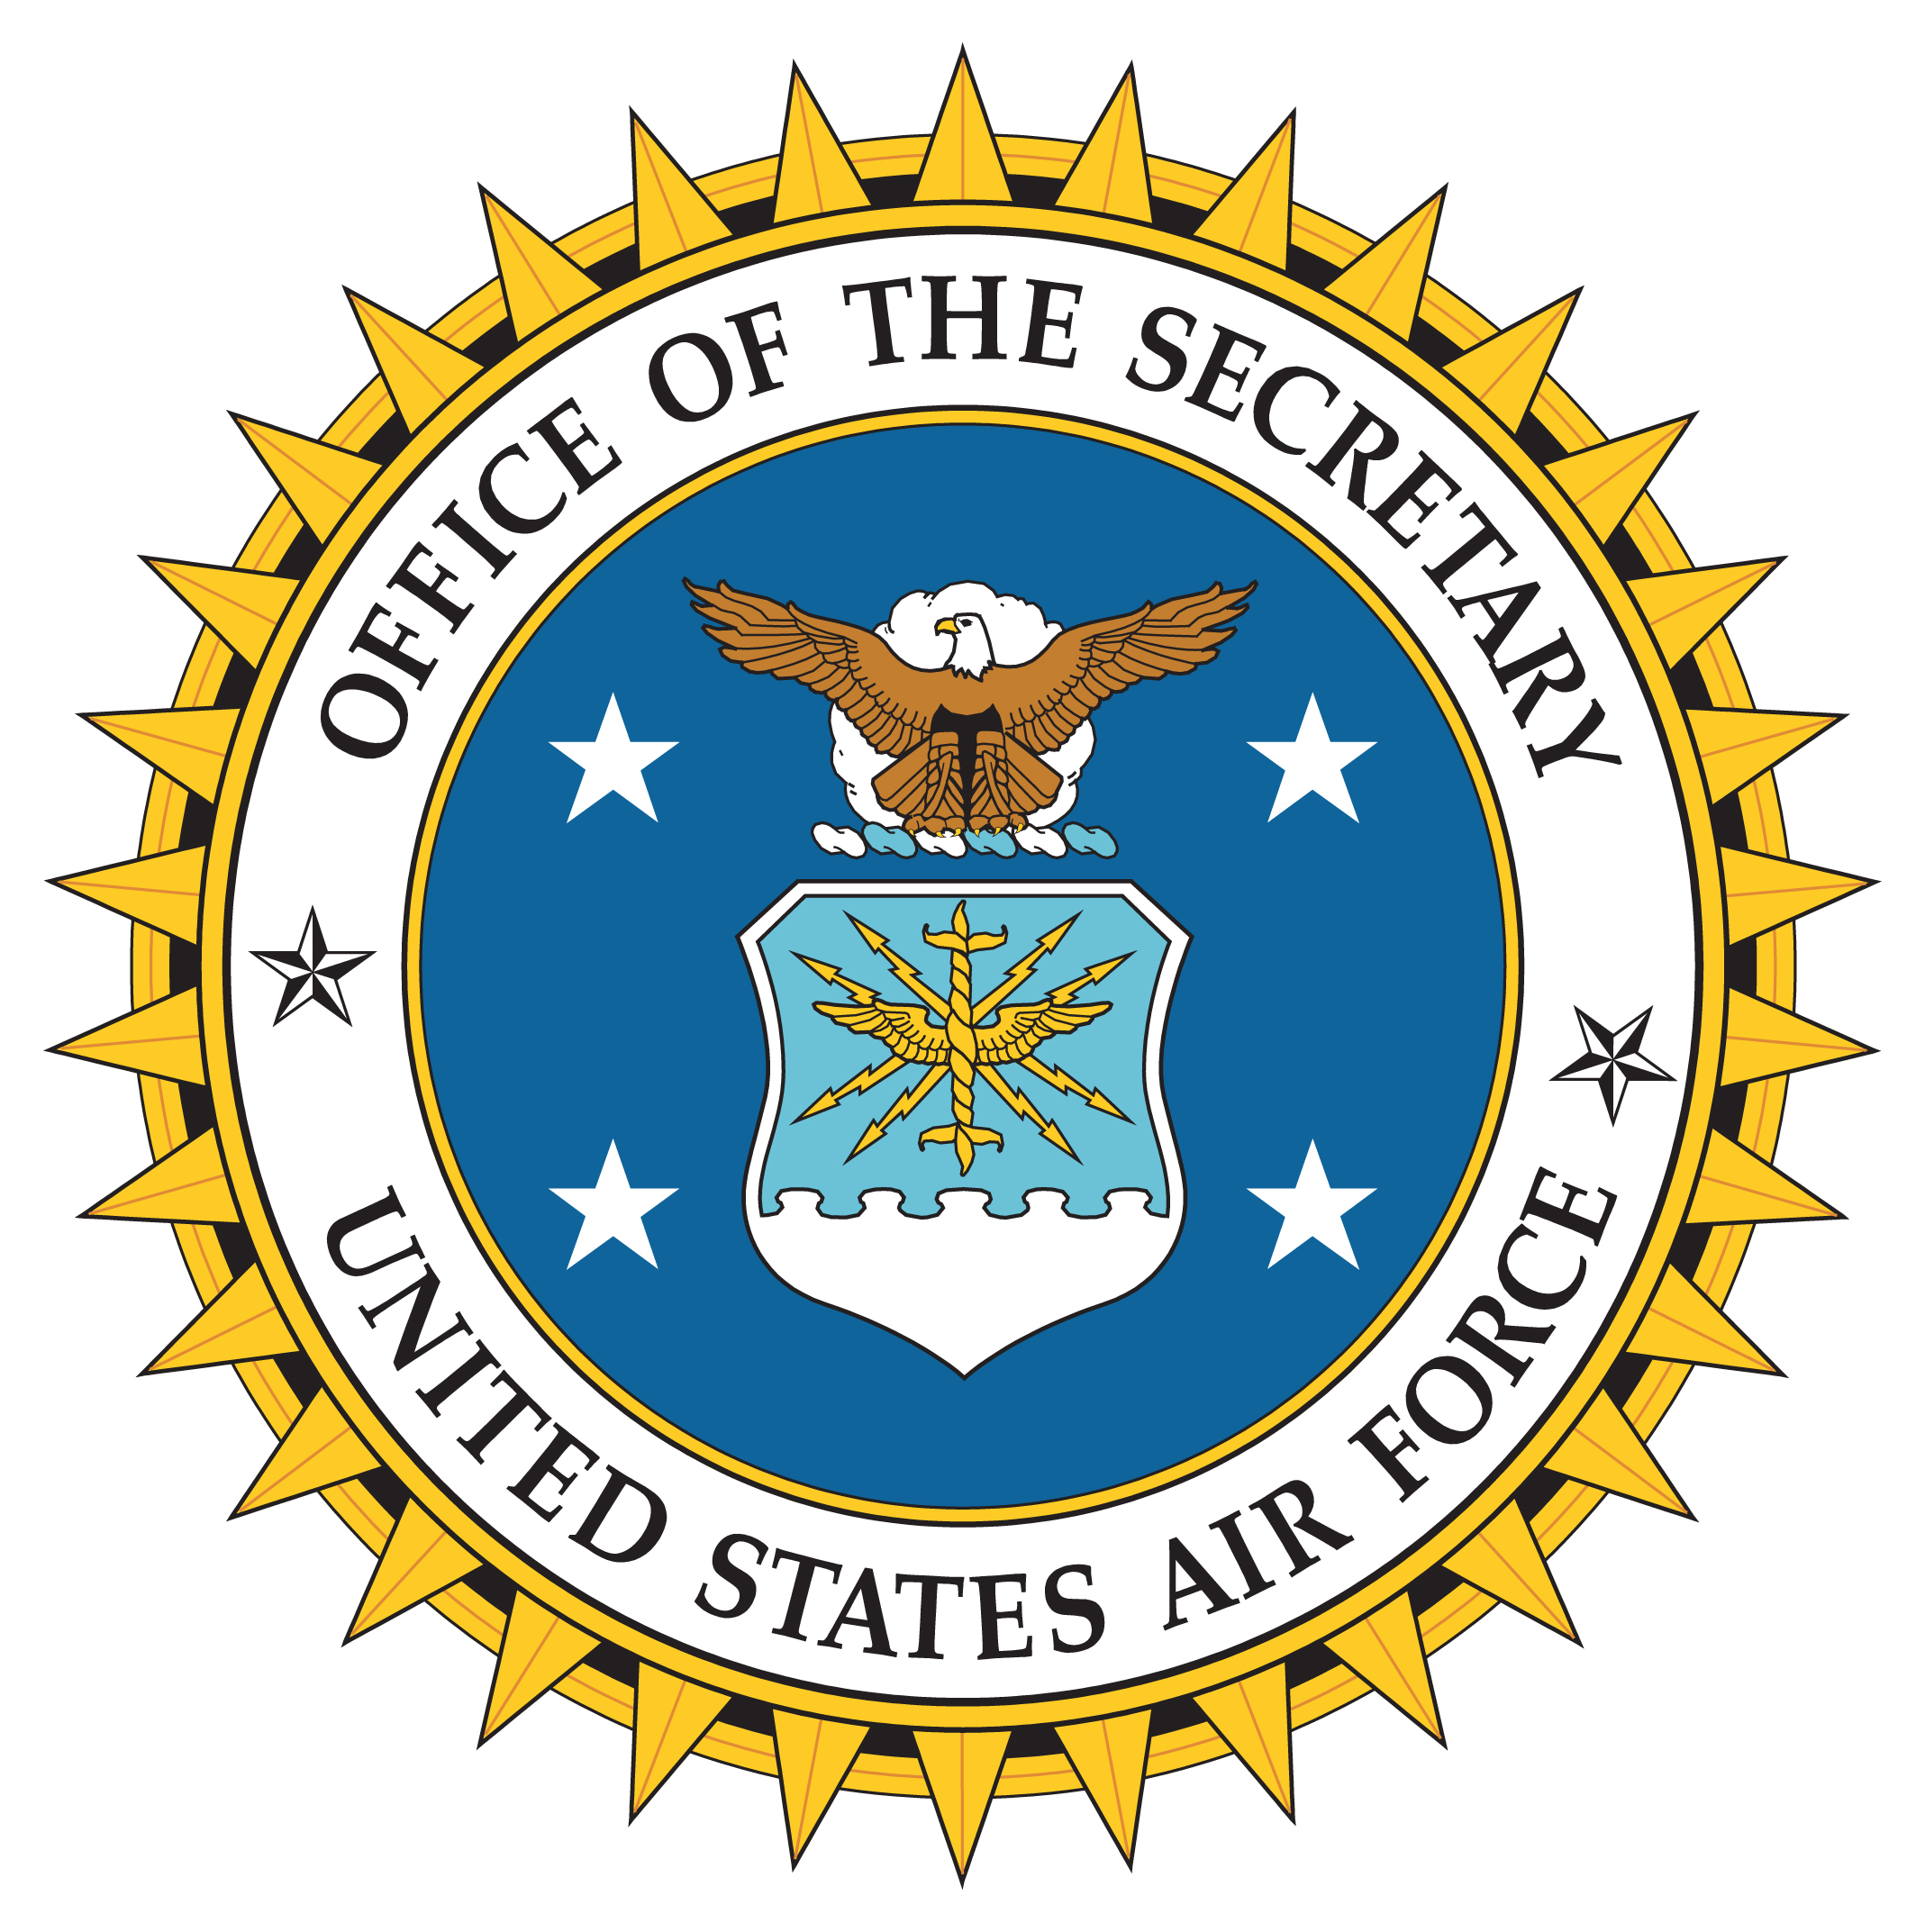 Office_of_the_Secretary_of_the_Air_Force_seal.jpg